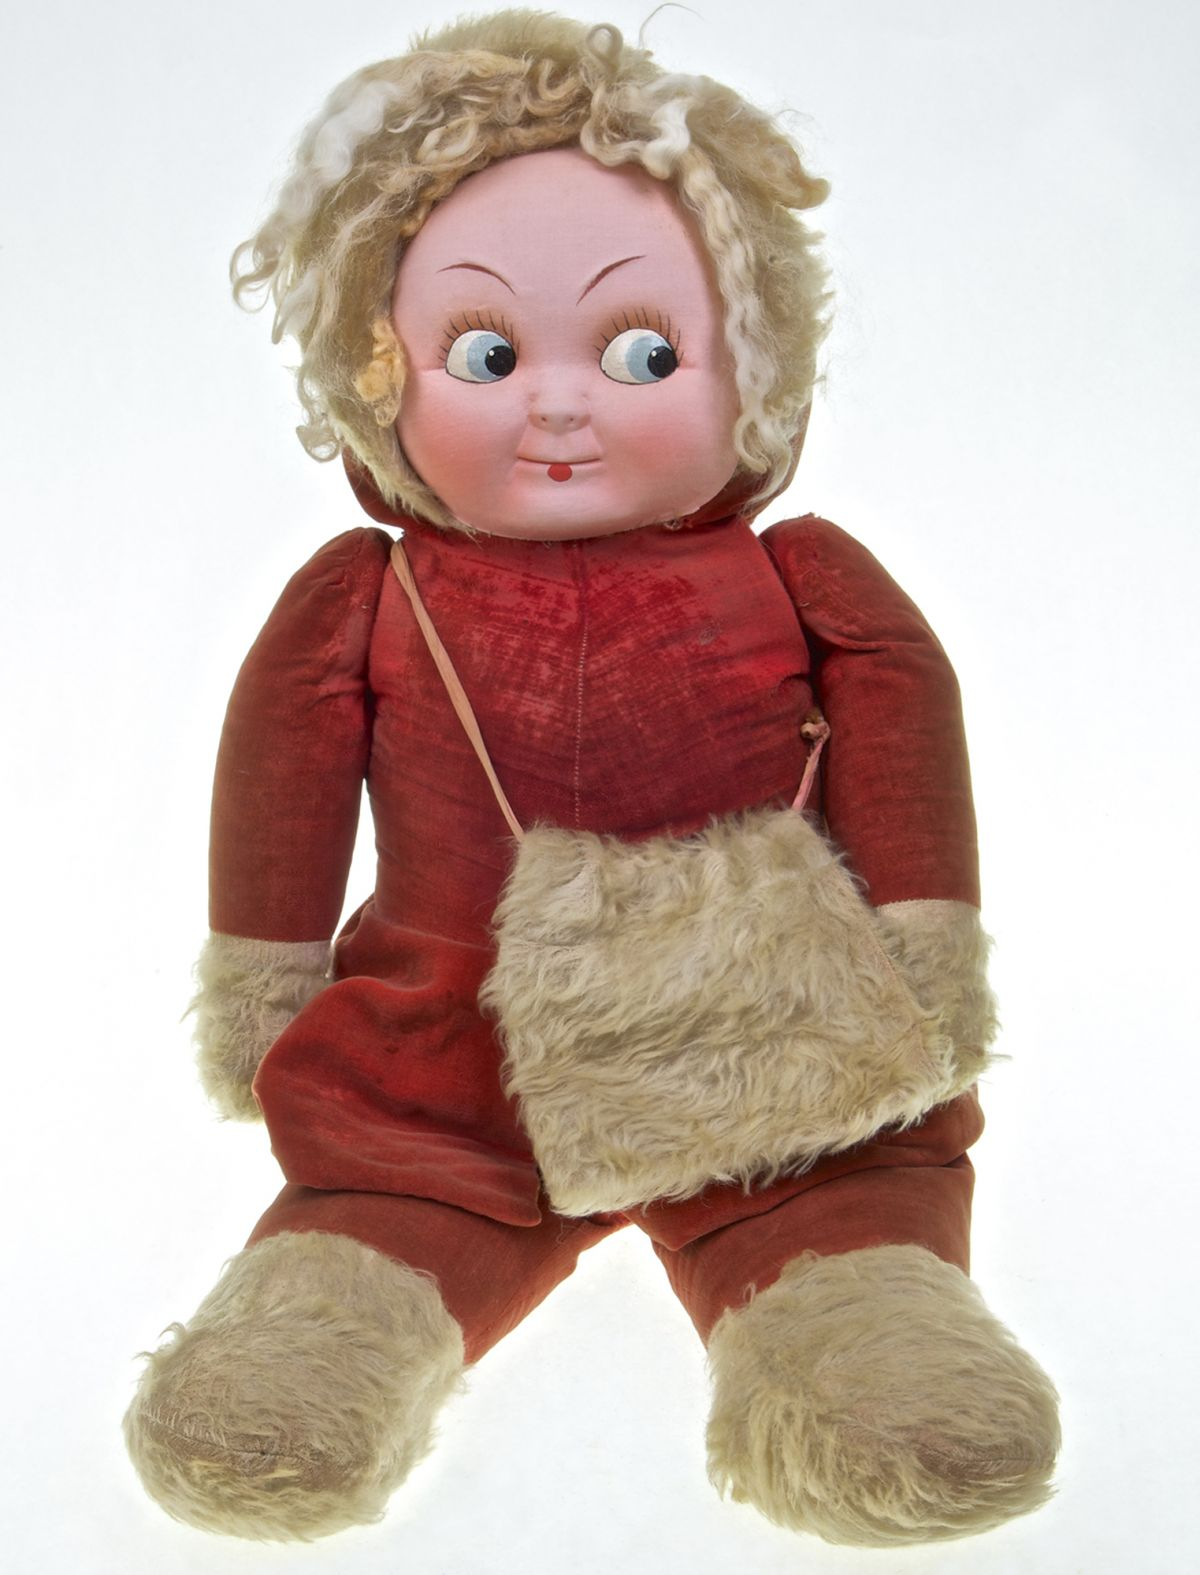 Vintage Stuffed Kewpie Doll